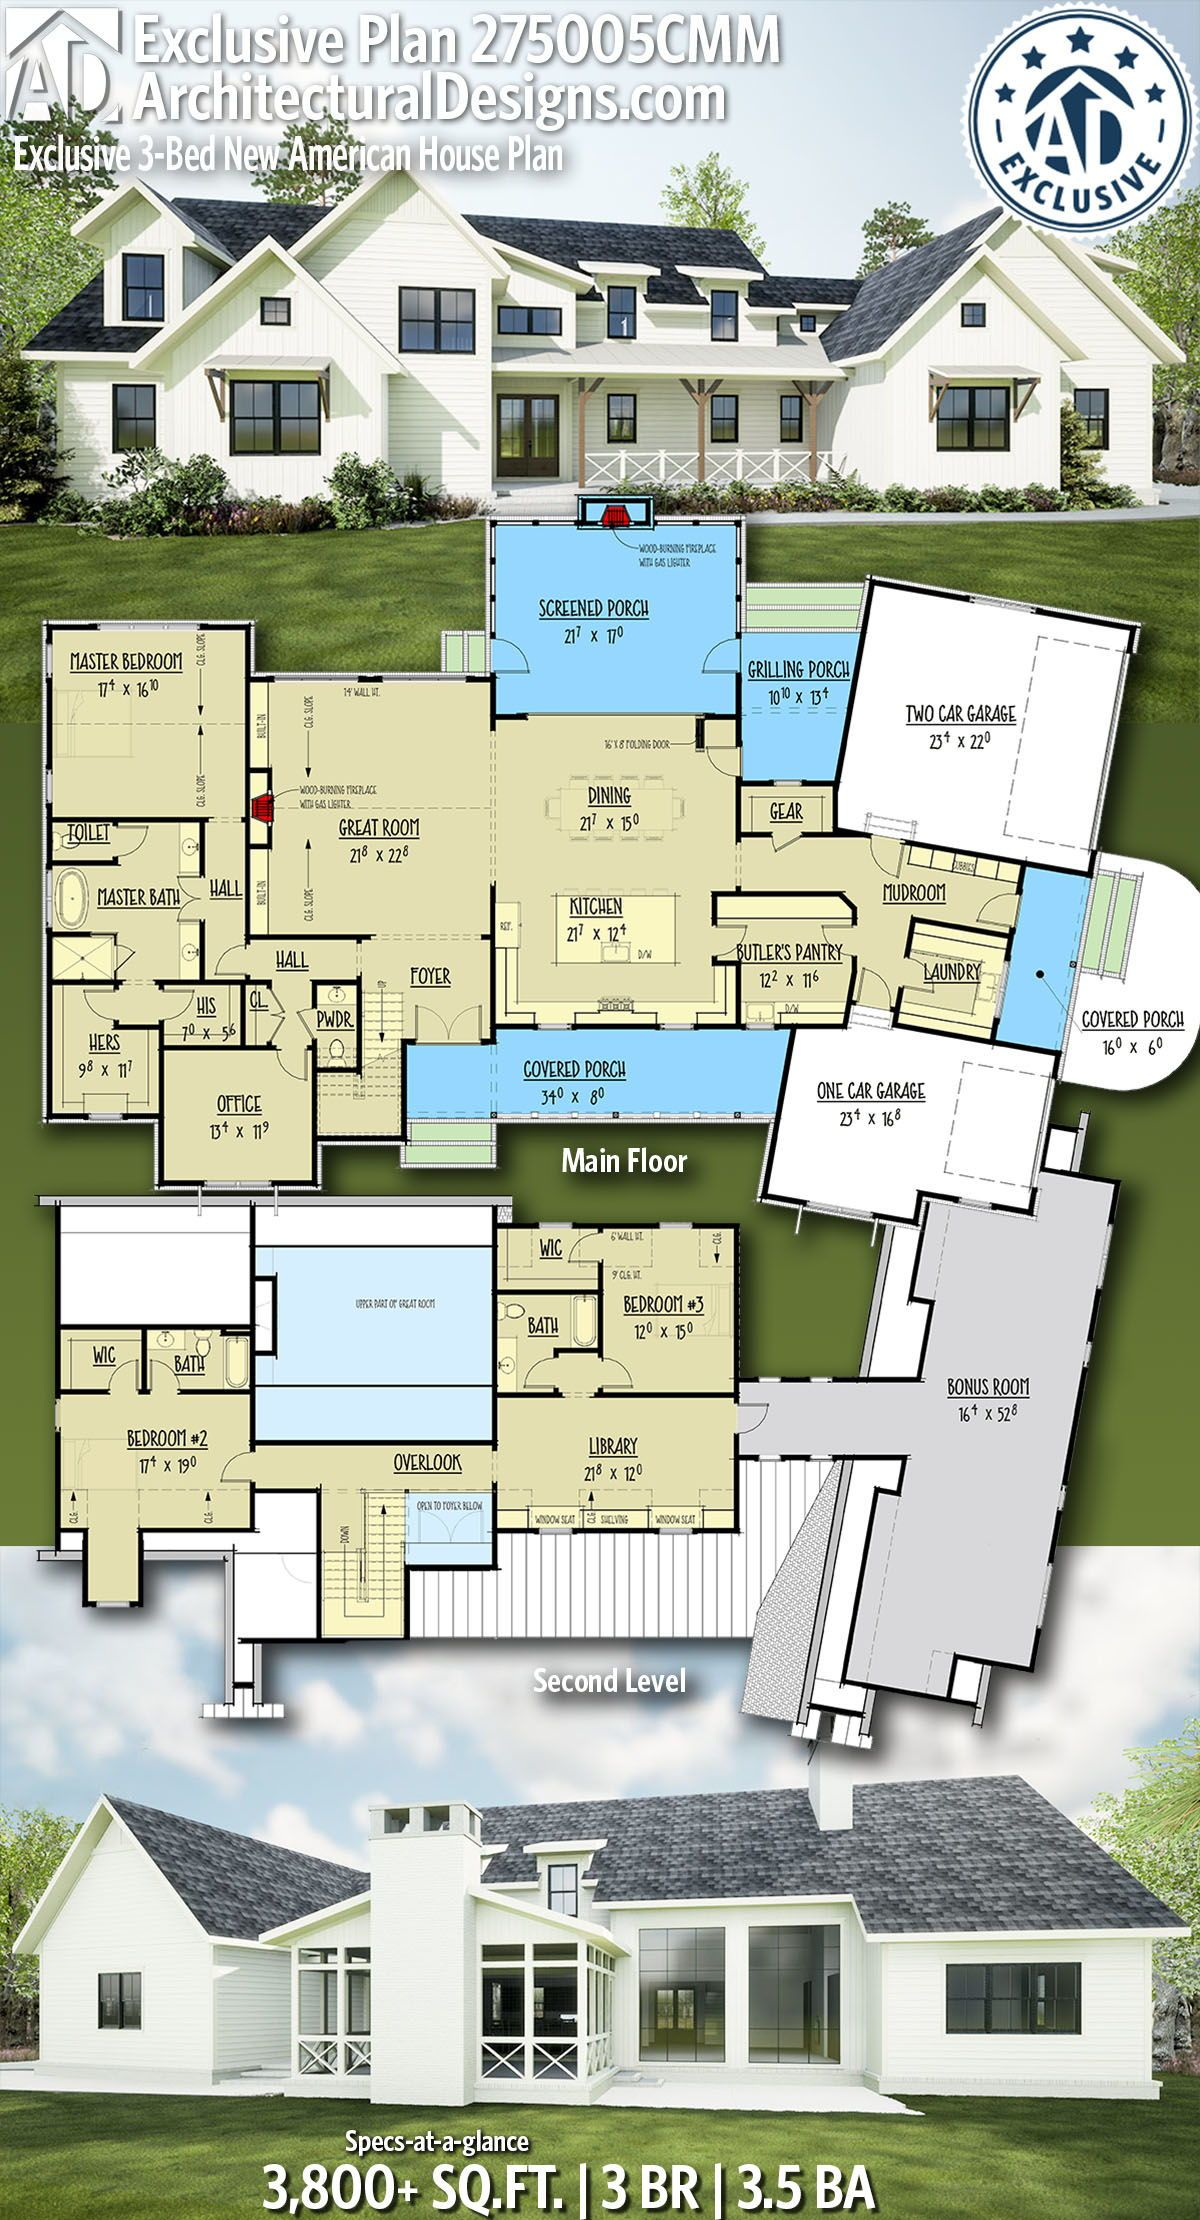 Architectural Designs Exclusive New American Plan 275005cmm 3 Bedrooms 3 5 Baths And 3 800 Sq Ft Ready When American House Plans House Plans American House